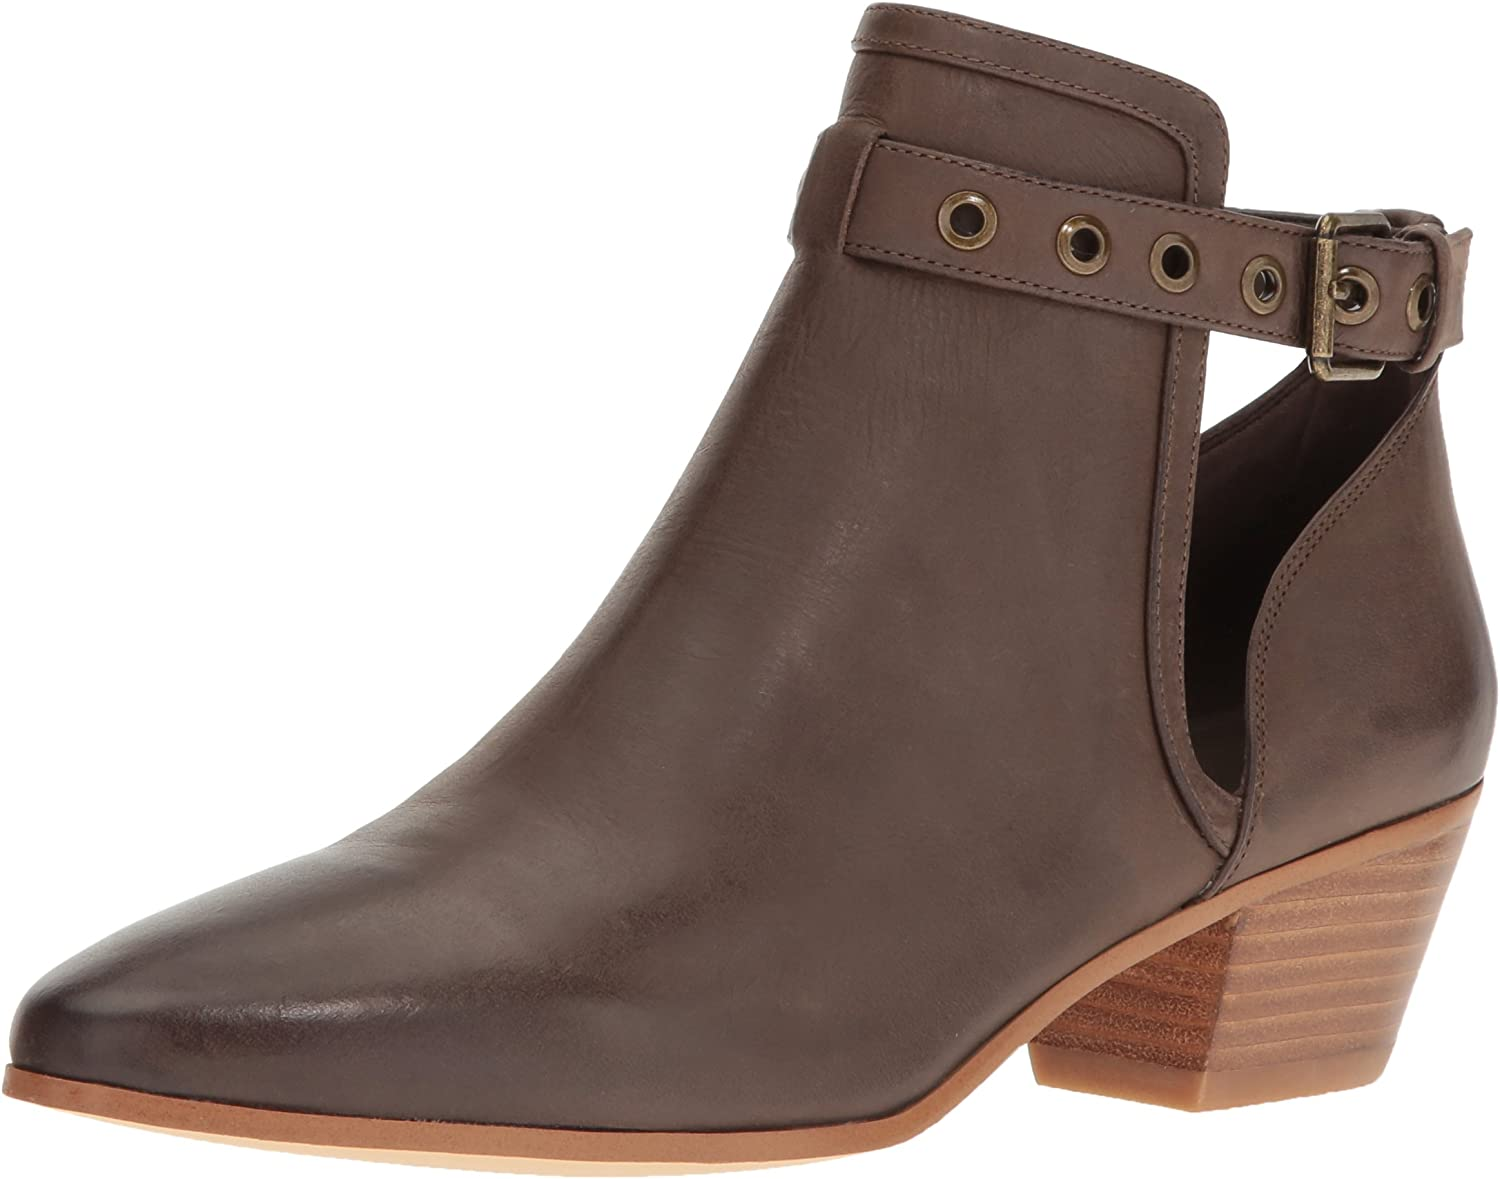 8d33281f170fd West Loyal Leather Boot Womens Nine nynfso5684-New Shoes - shirts ...